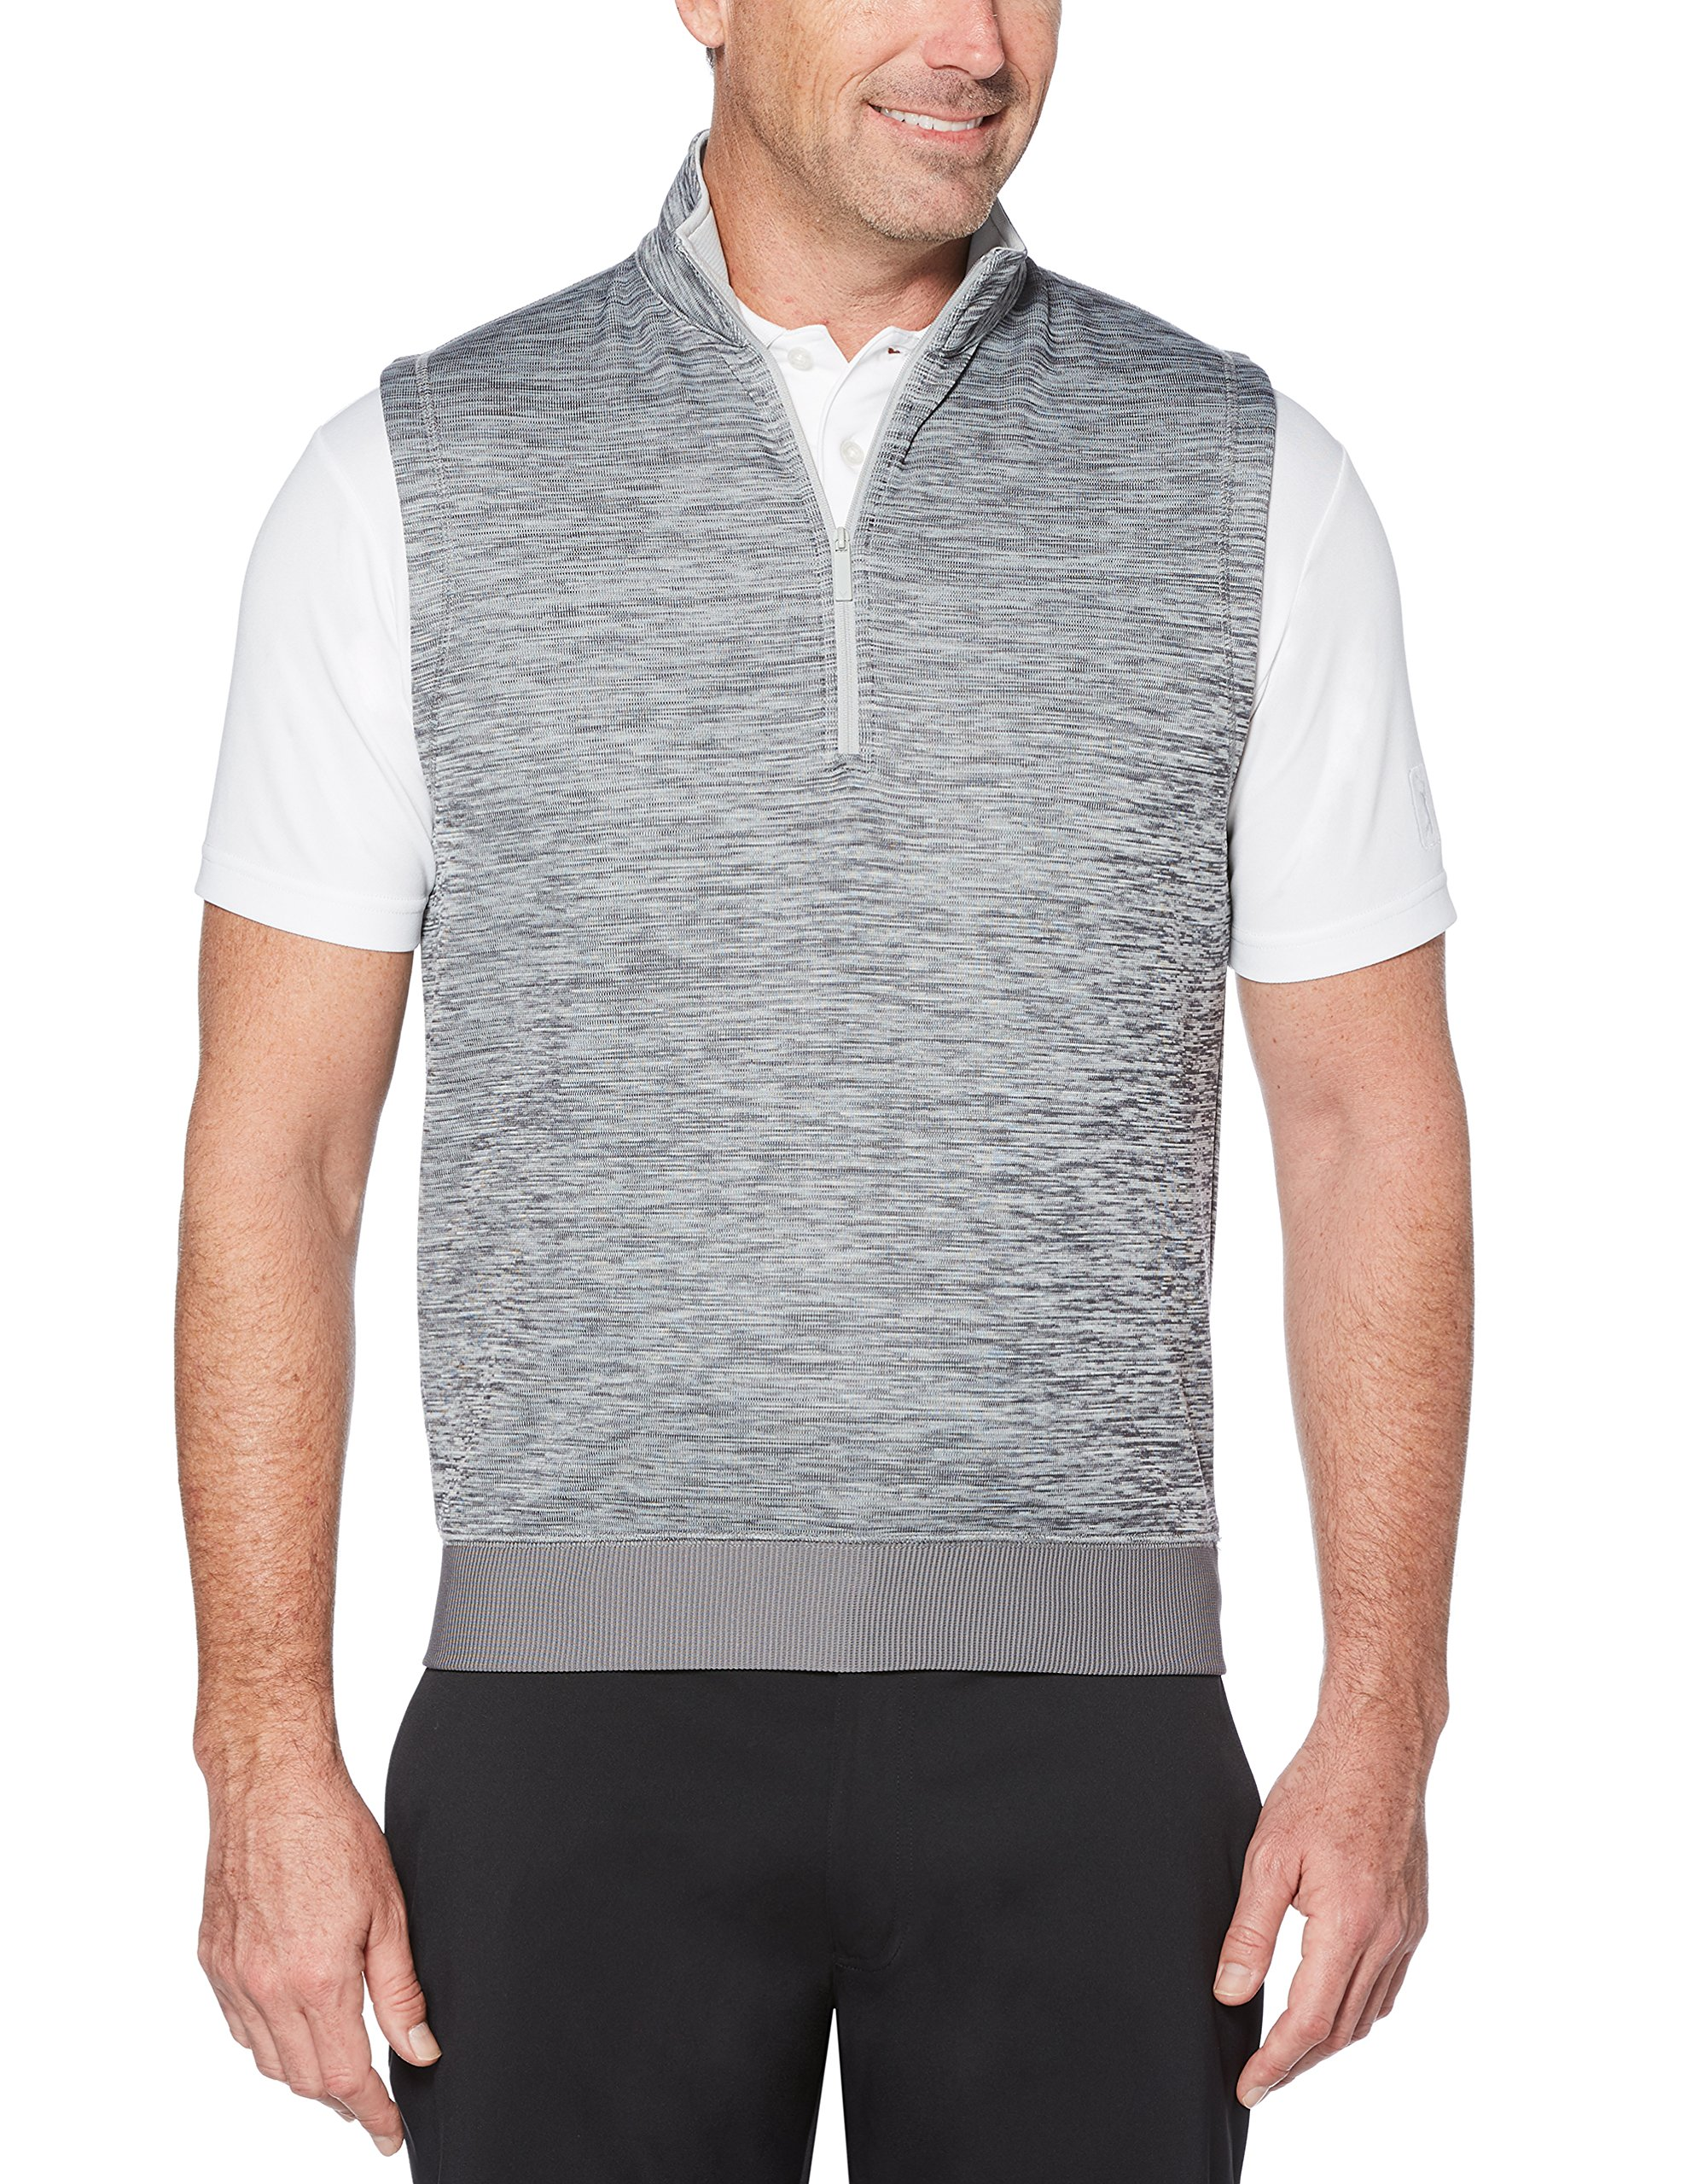 Callaway Men's Water Repellent 1/4 Zip Golf Vest, Medium Grey Heather, Small by Callaway